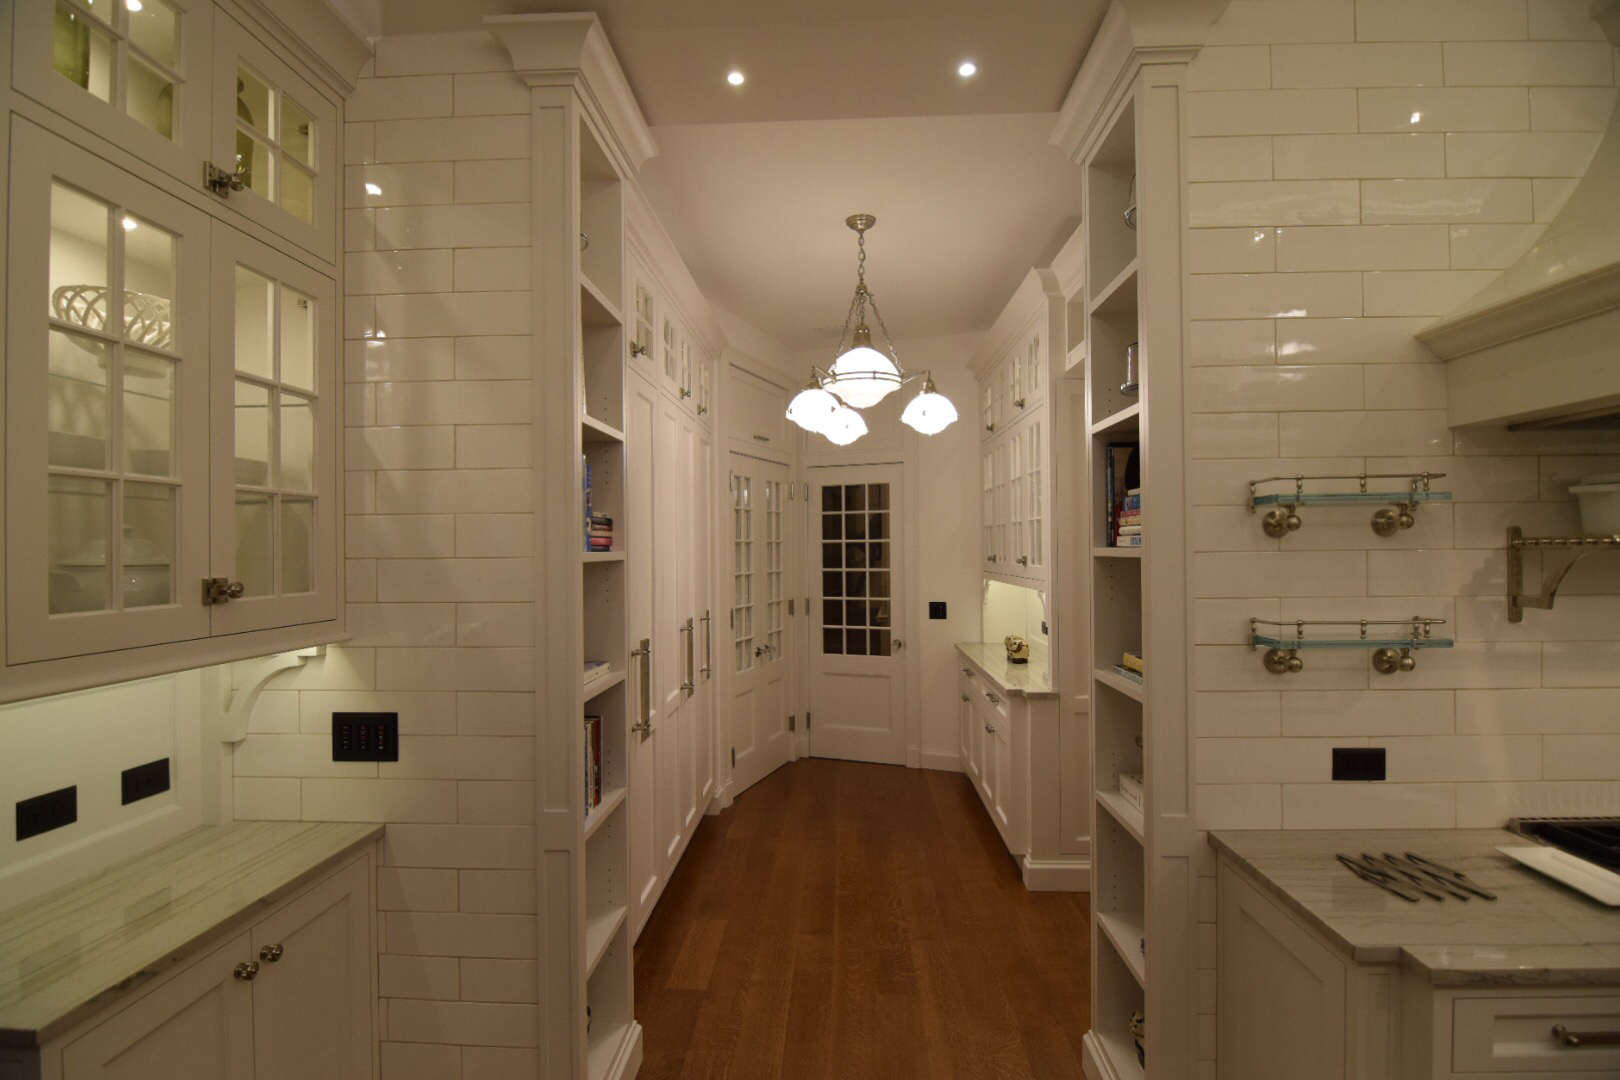 custom-traditional-kitchen-face-frame-with-inset-cabinet-doors-and-custom-1890s-style-architectural-doors.jpg